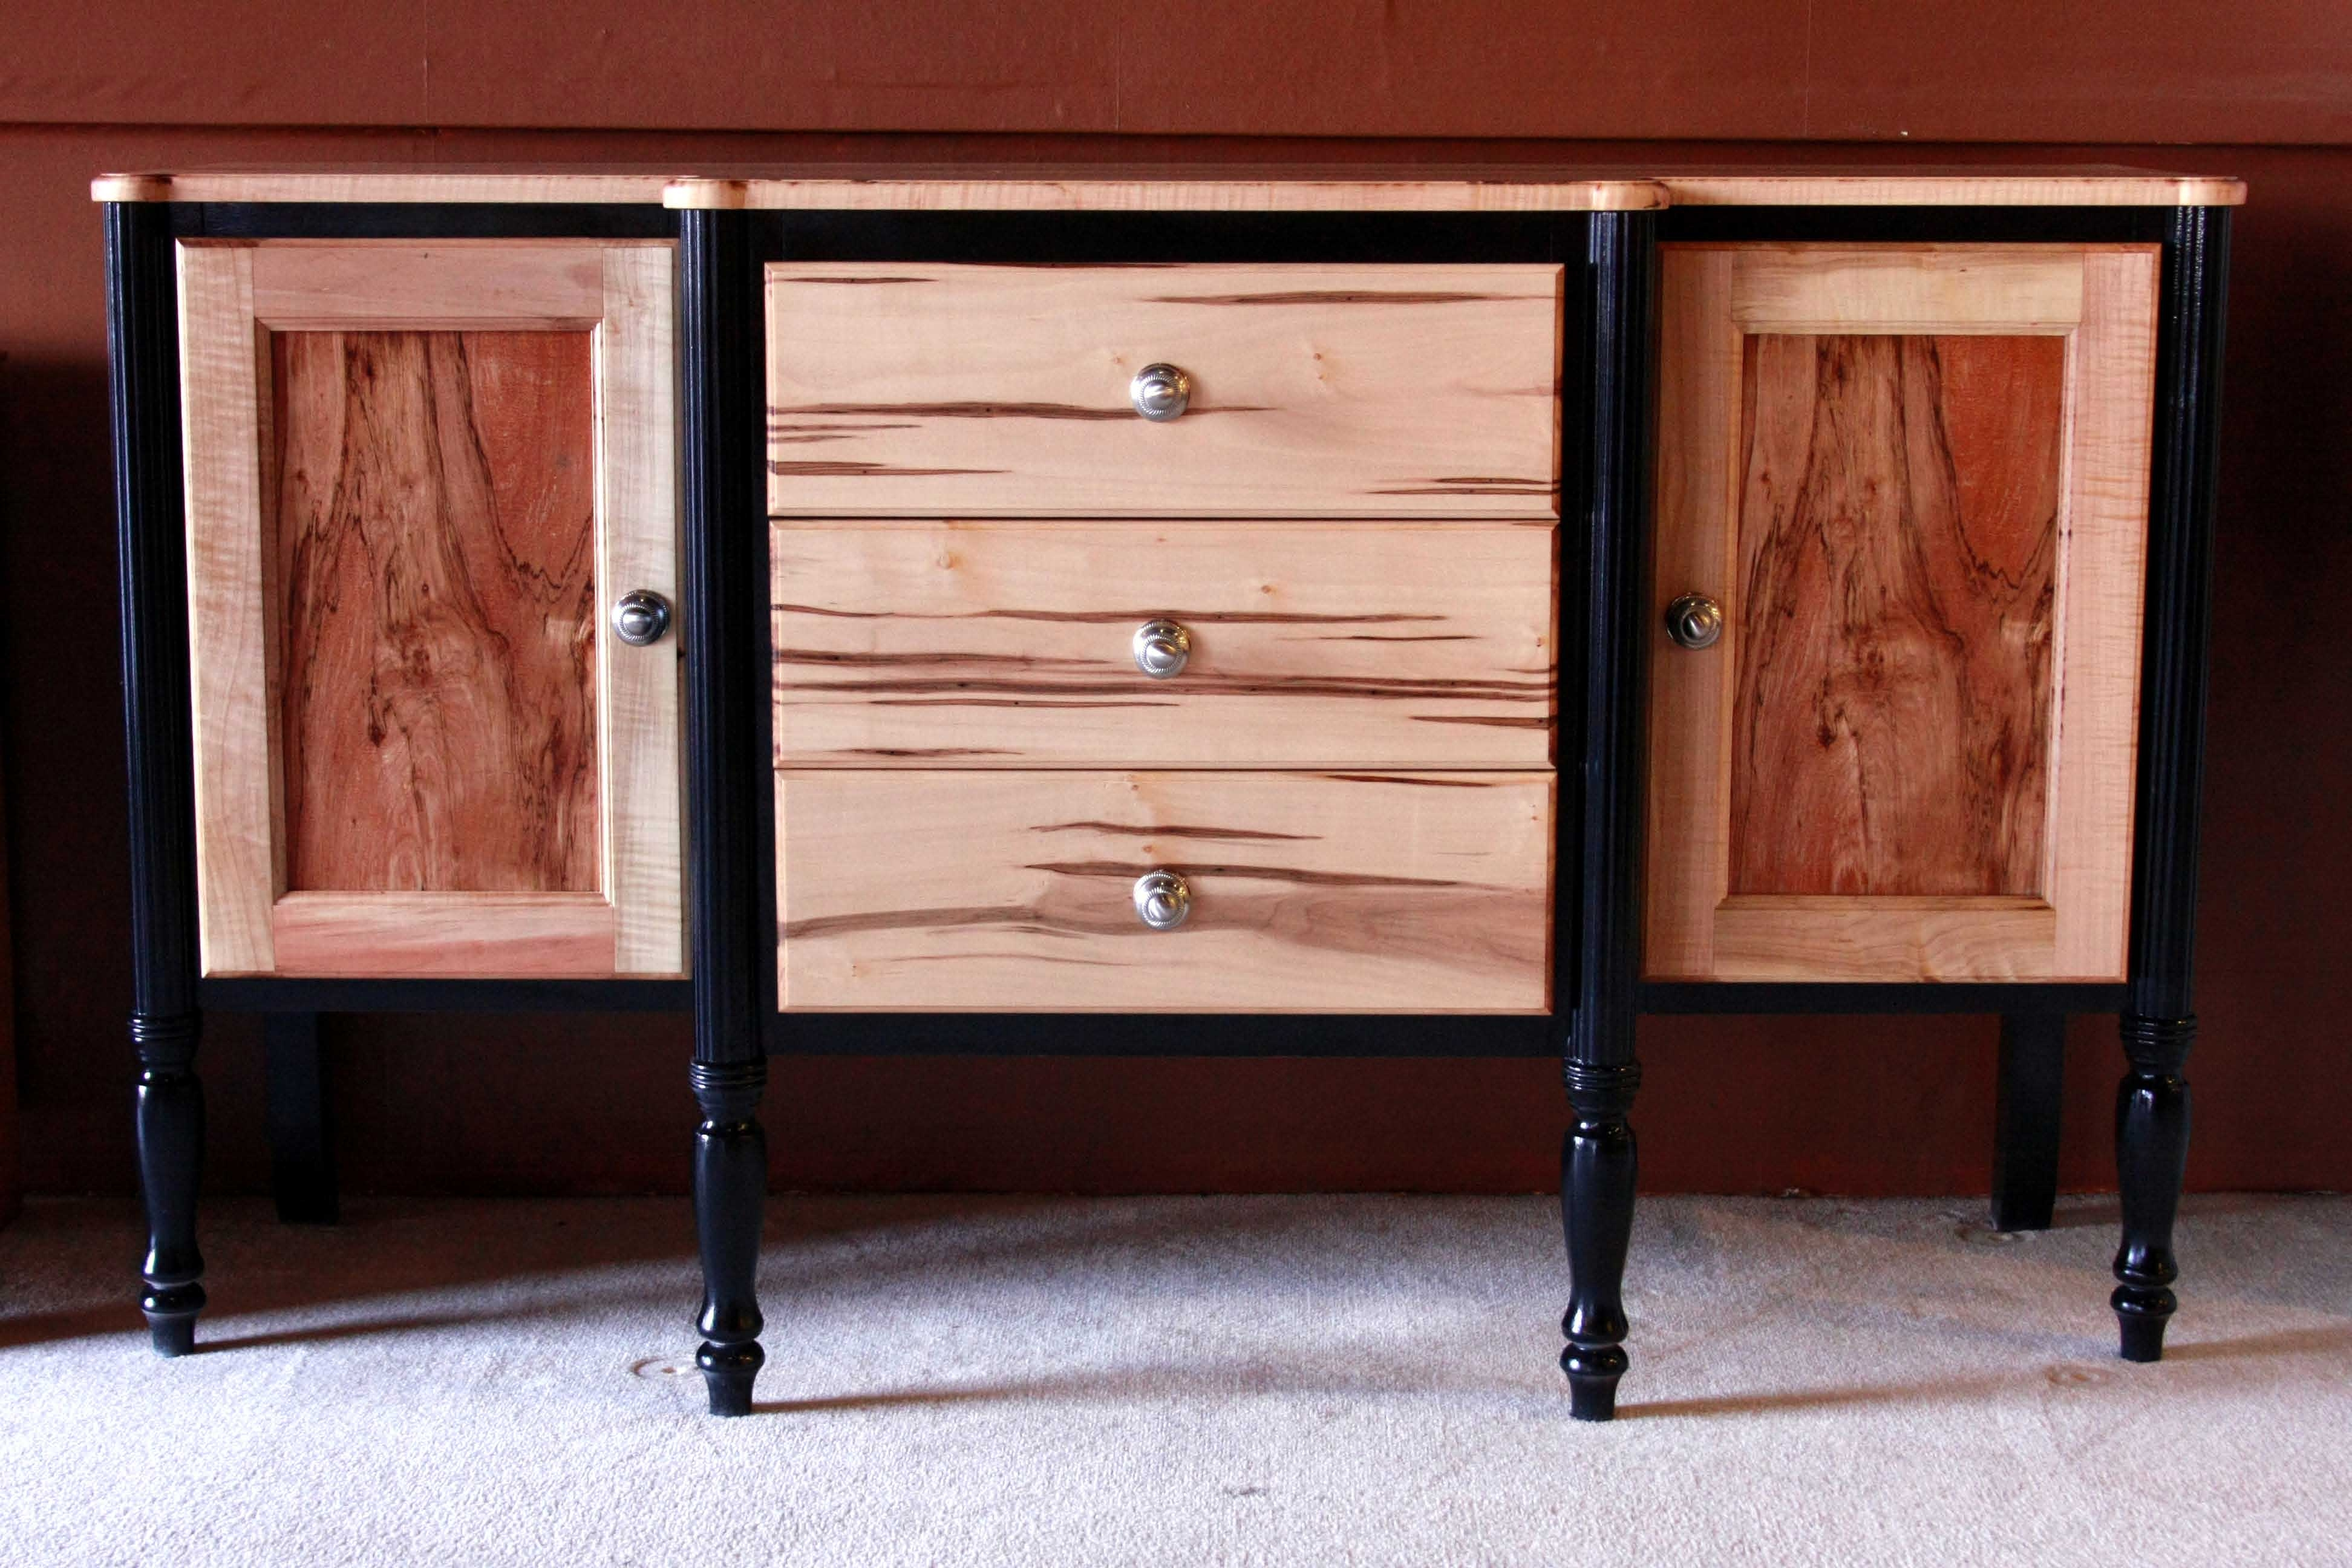 With over 30 years of furniture building experience, I will build you the perfect piece.  Buddy Beyer